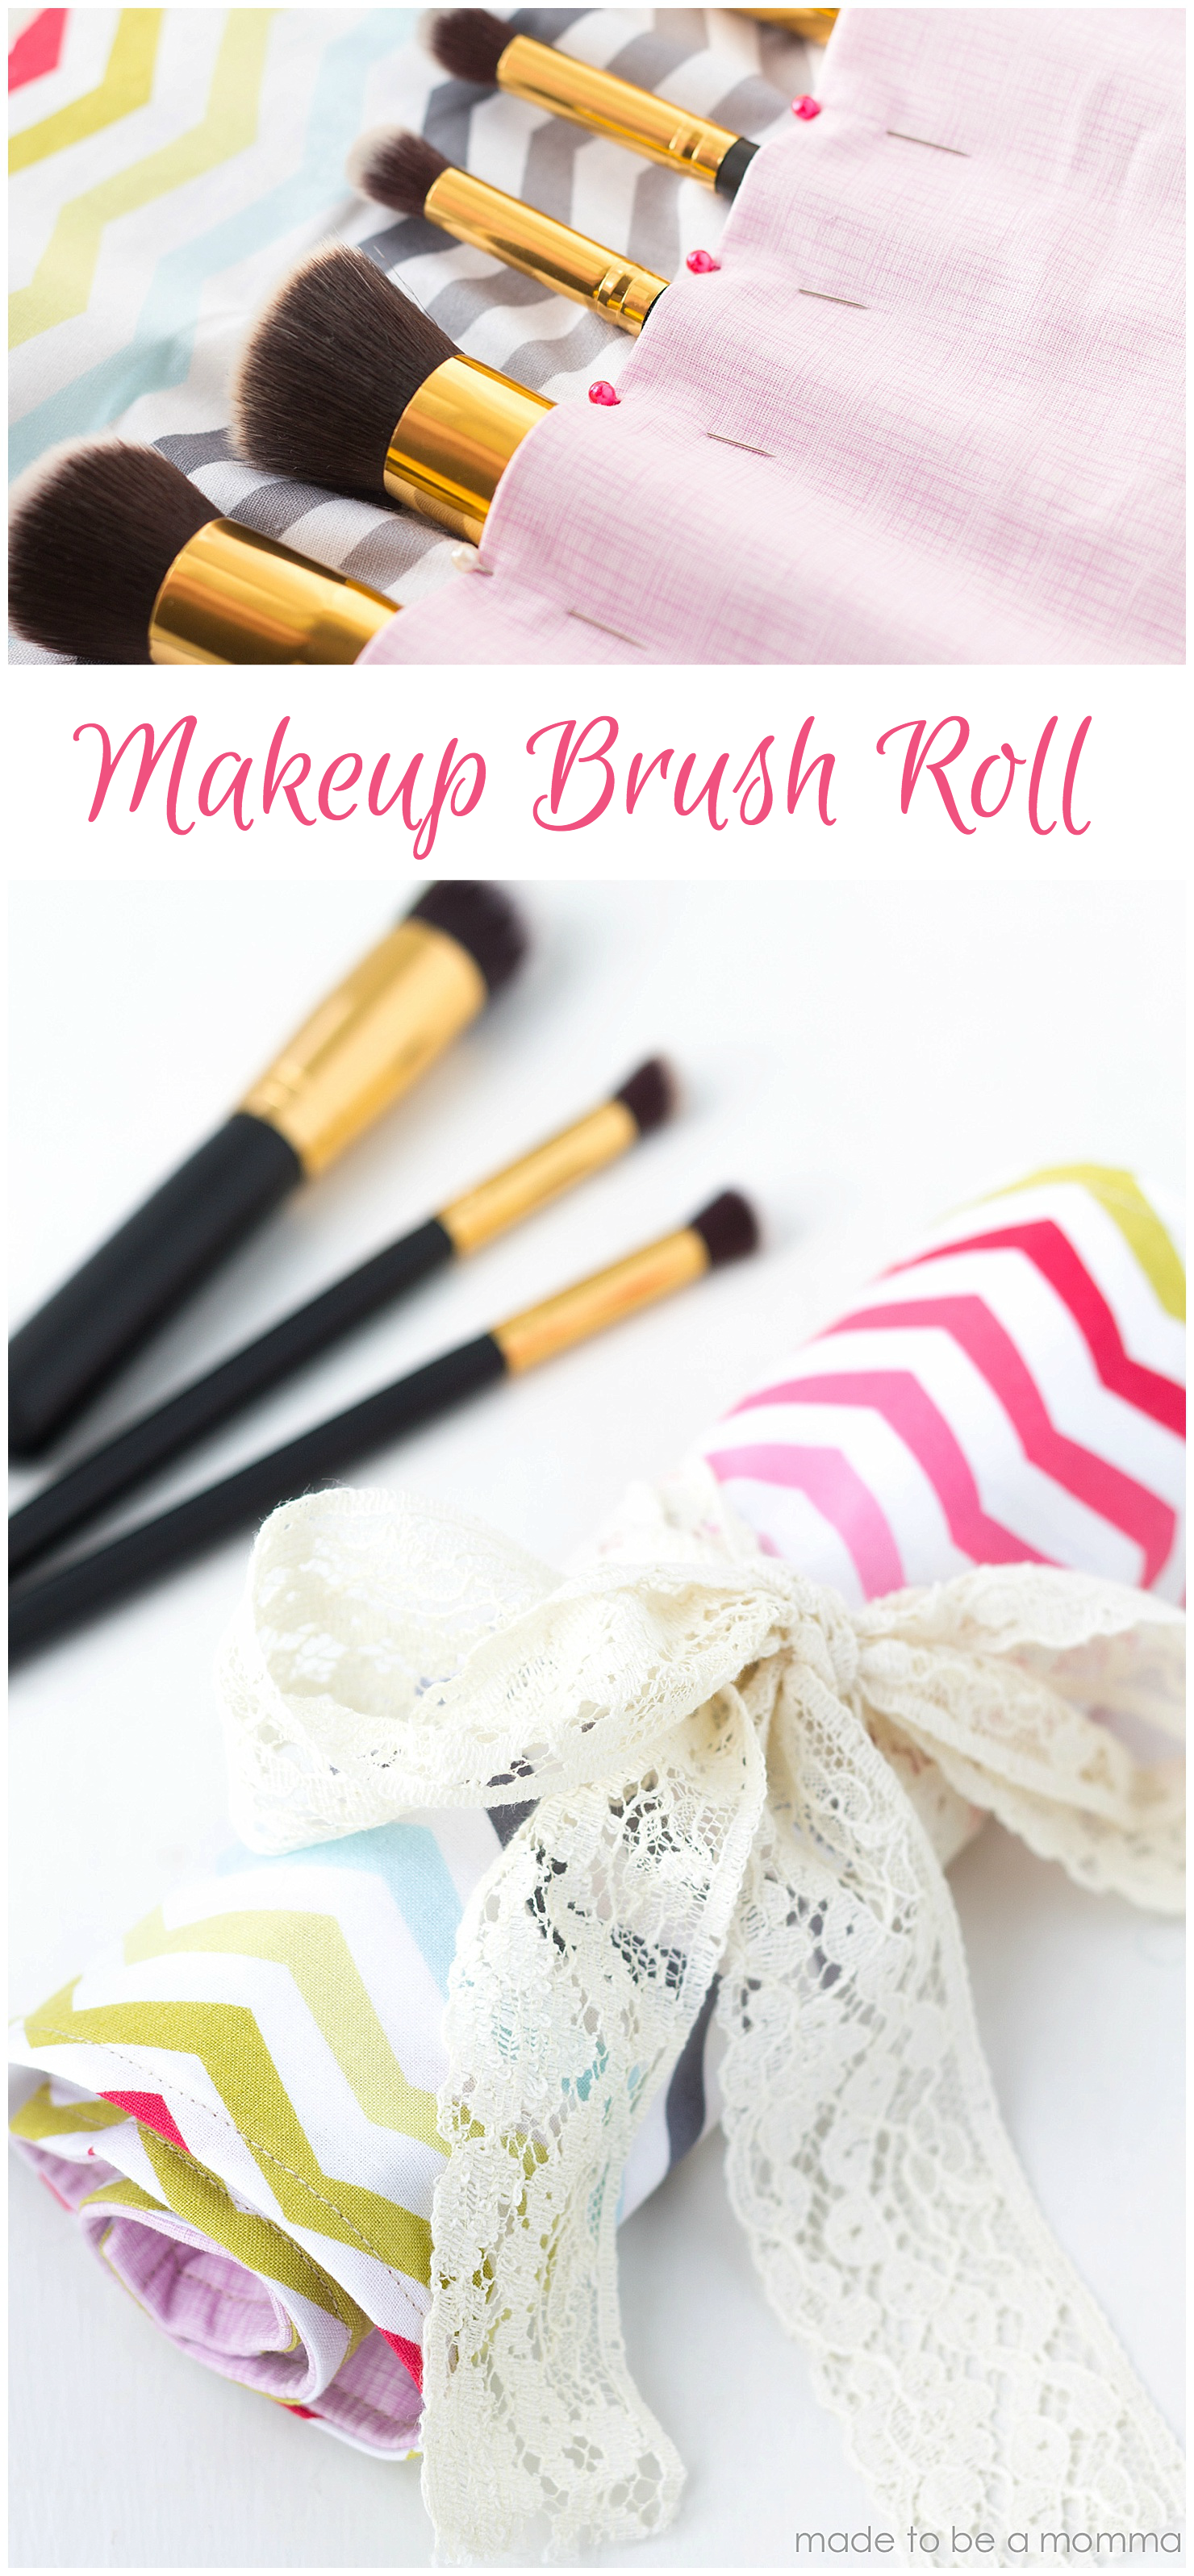 http://www.madetobeamomma.com/wp-content/uploads/2015/09/Makeup-Brush-Roll.png